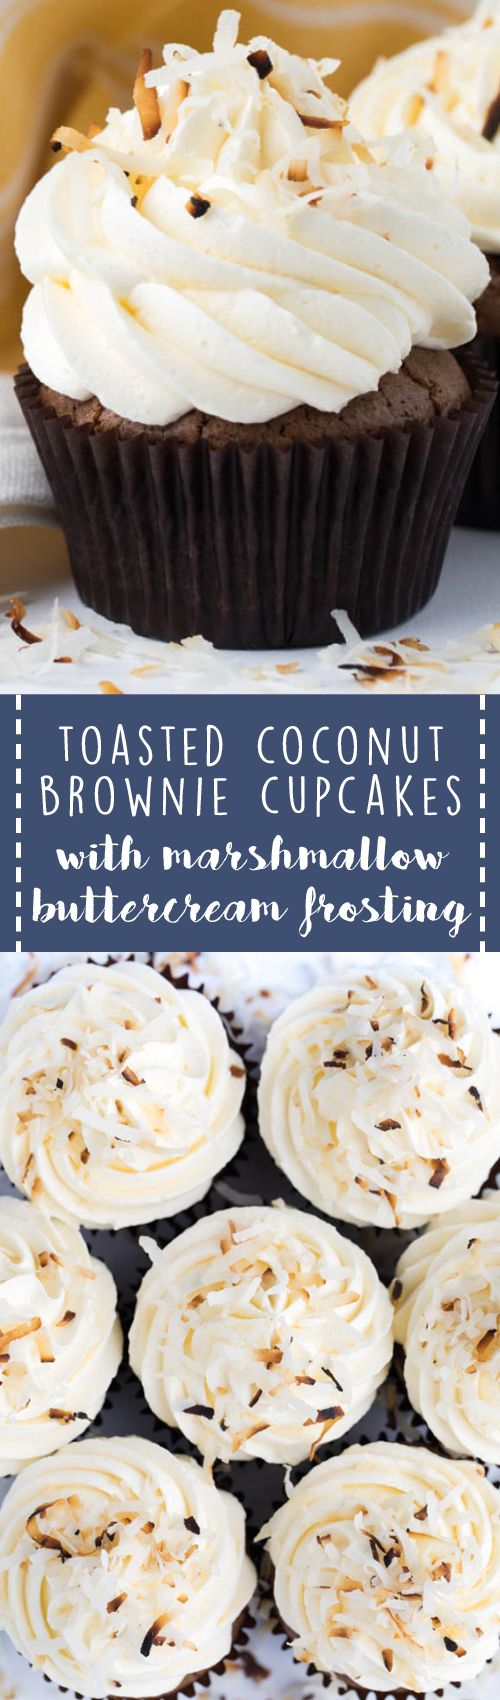 Toasted Coconut Brownie Cupcakes with Marshmallow Buttercream Frosting are perfect for birthdays, celebrations or even just for dessert after dinner!